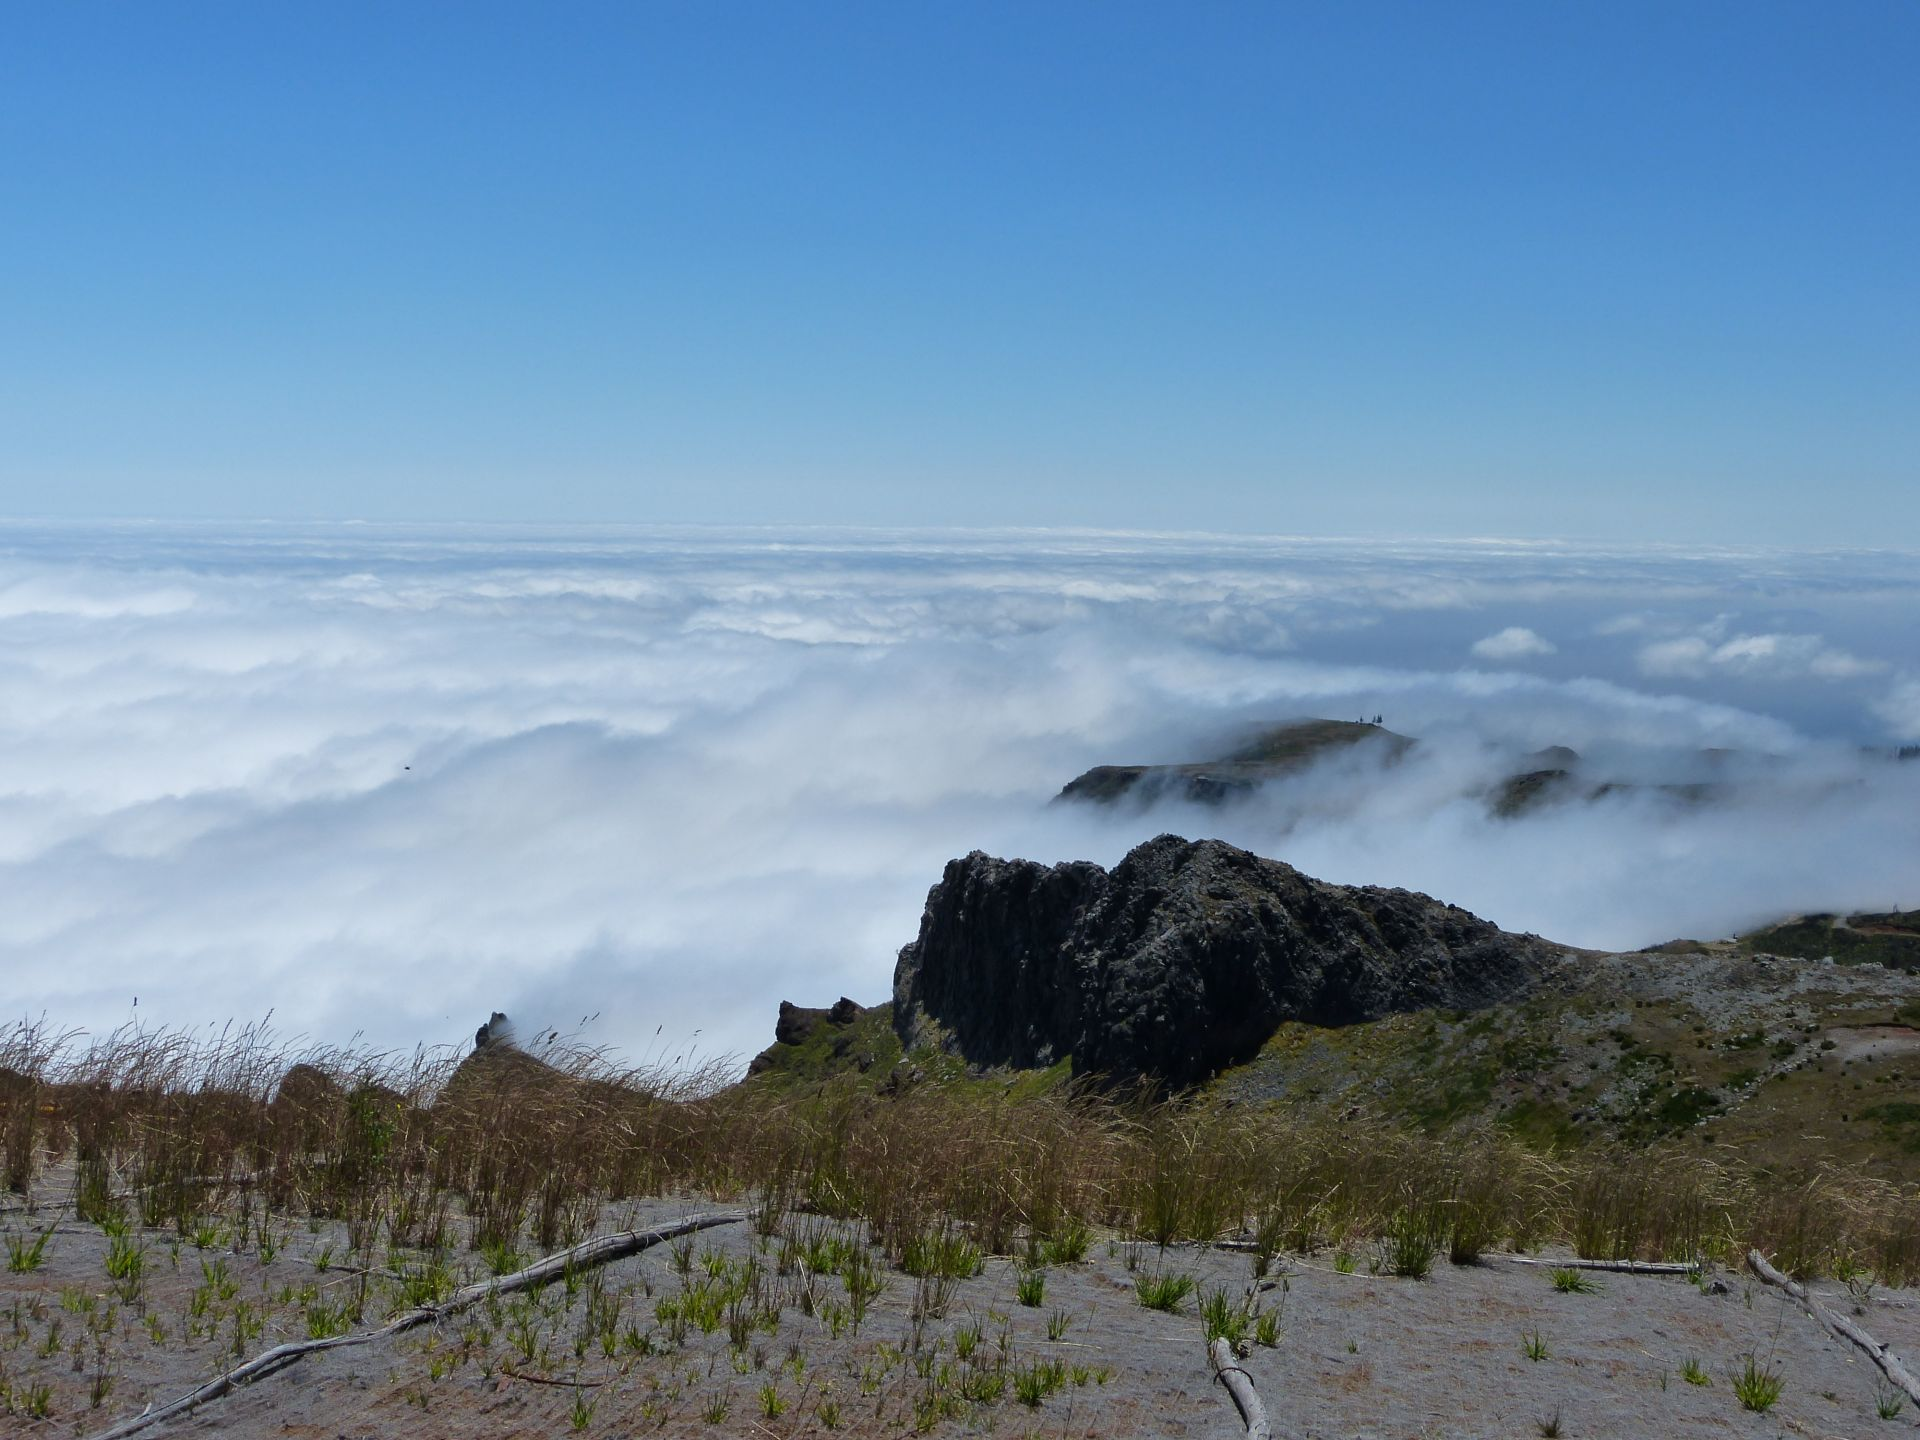 Am Pico do Arieiro über den Wolken